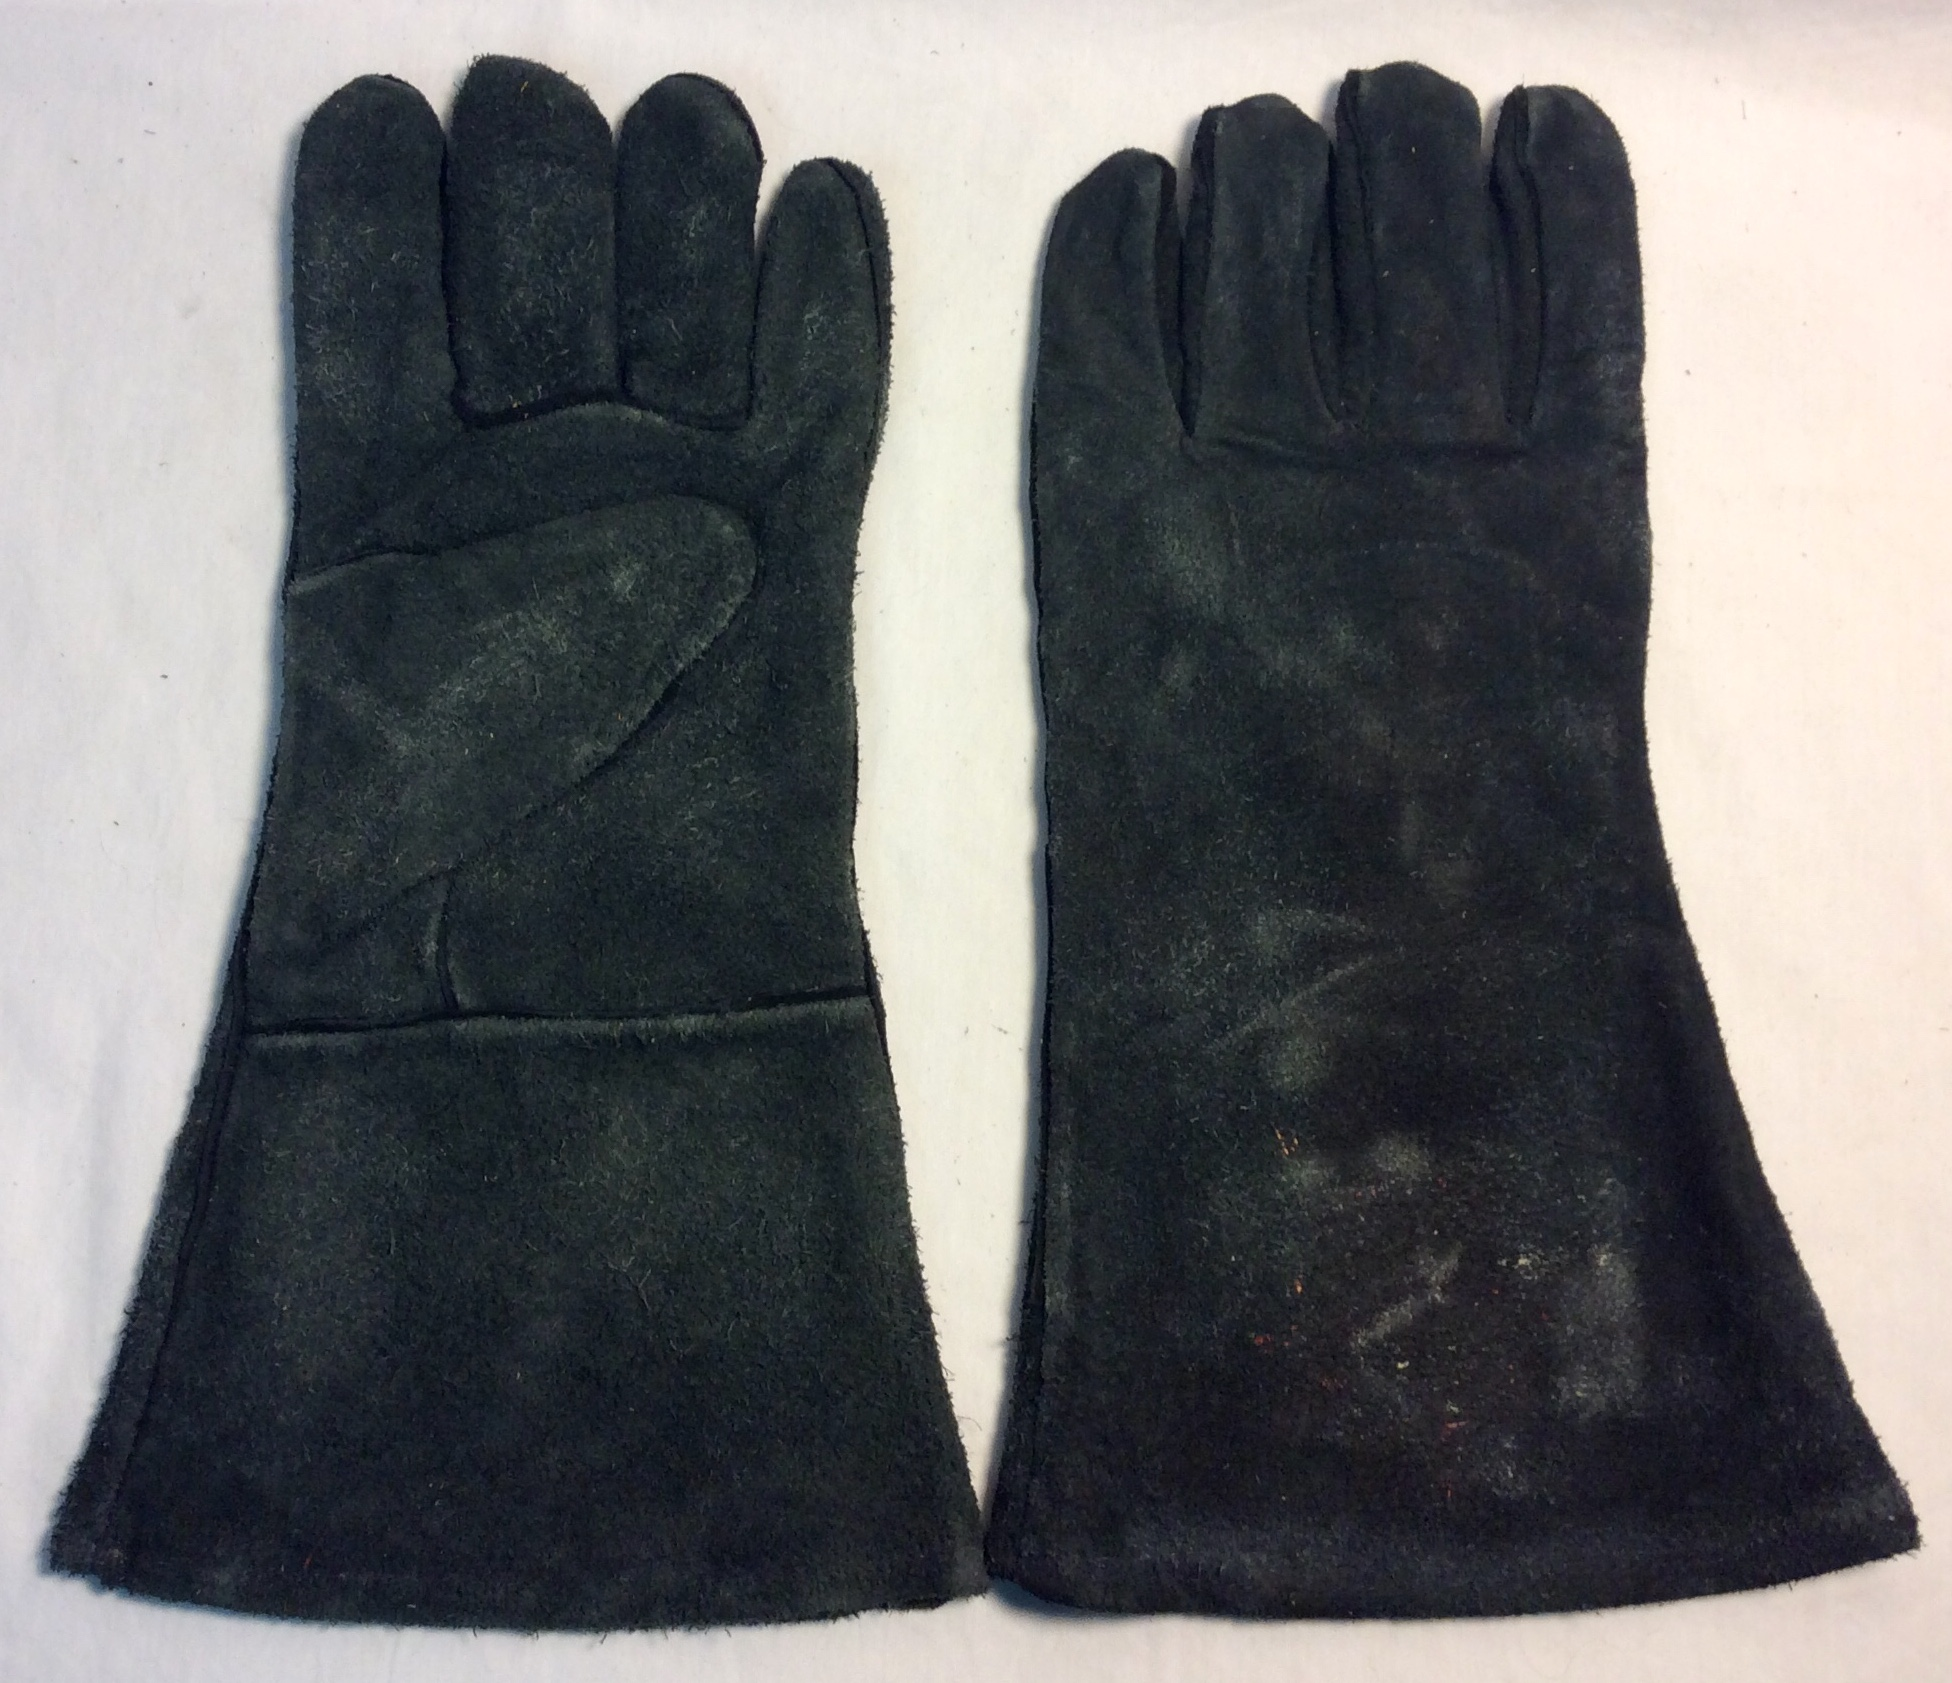 "Pair of black leather welding gloves with 4.5"" long sleeve"